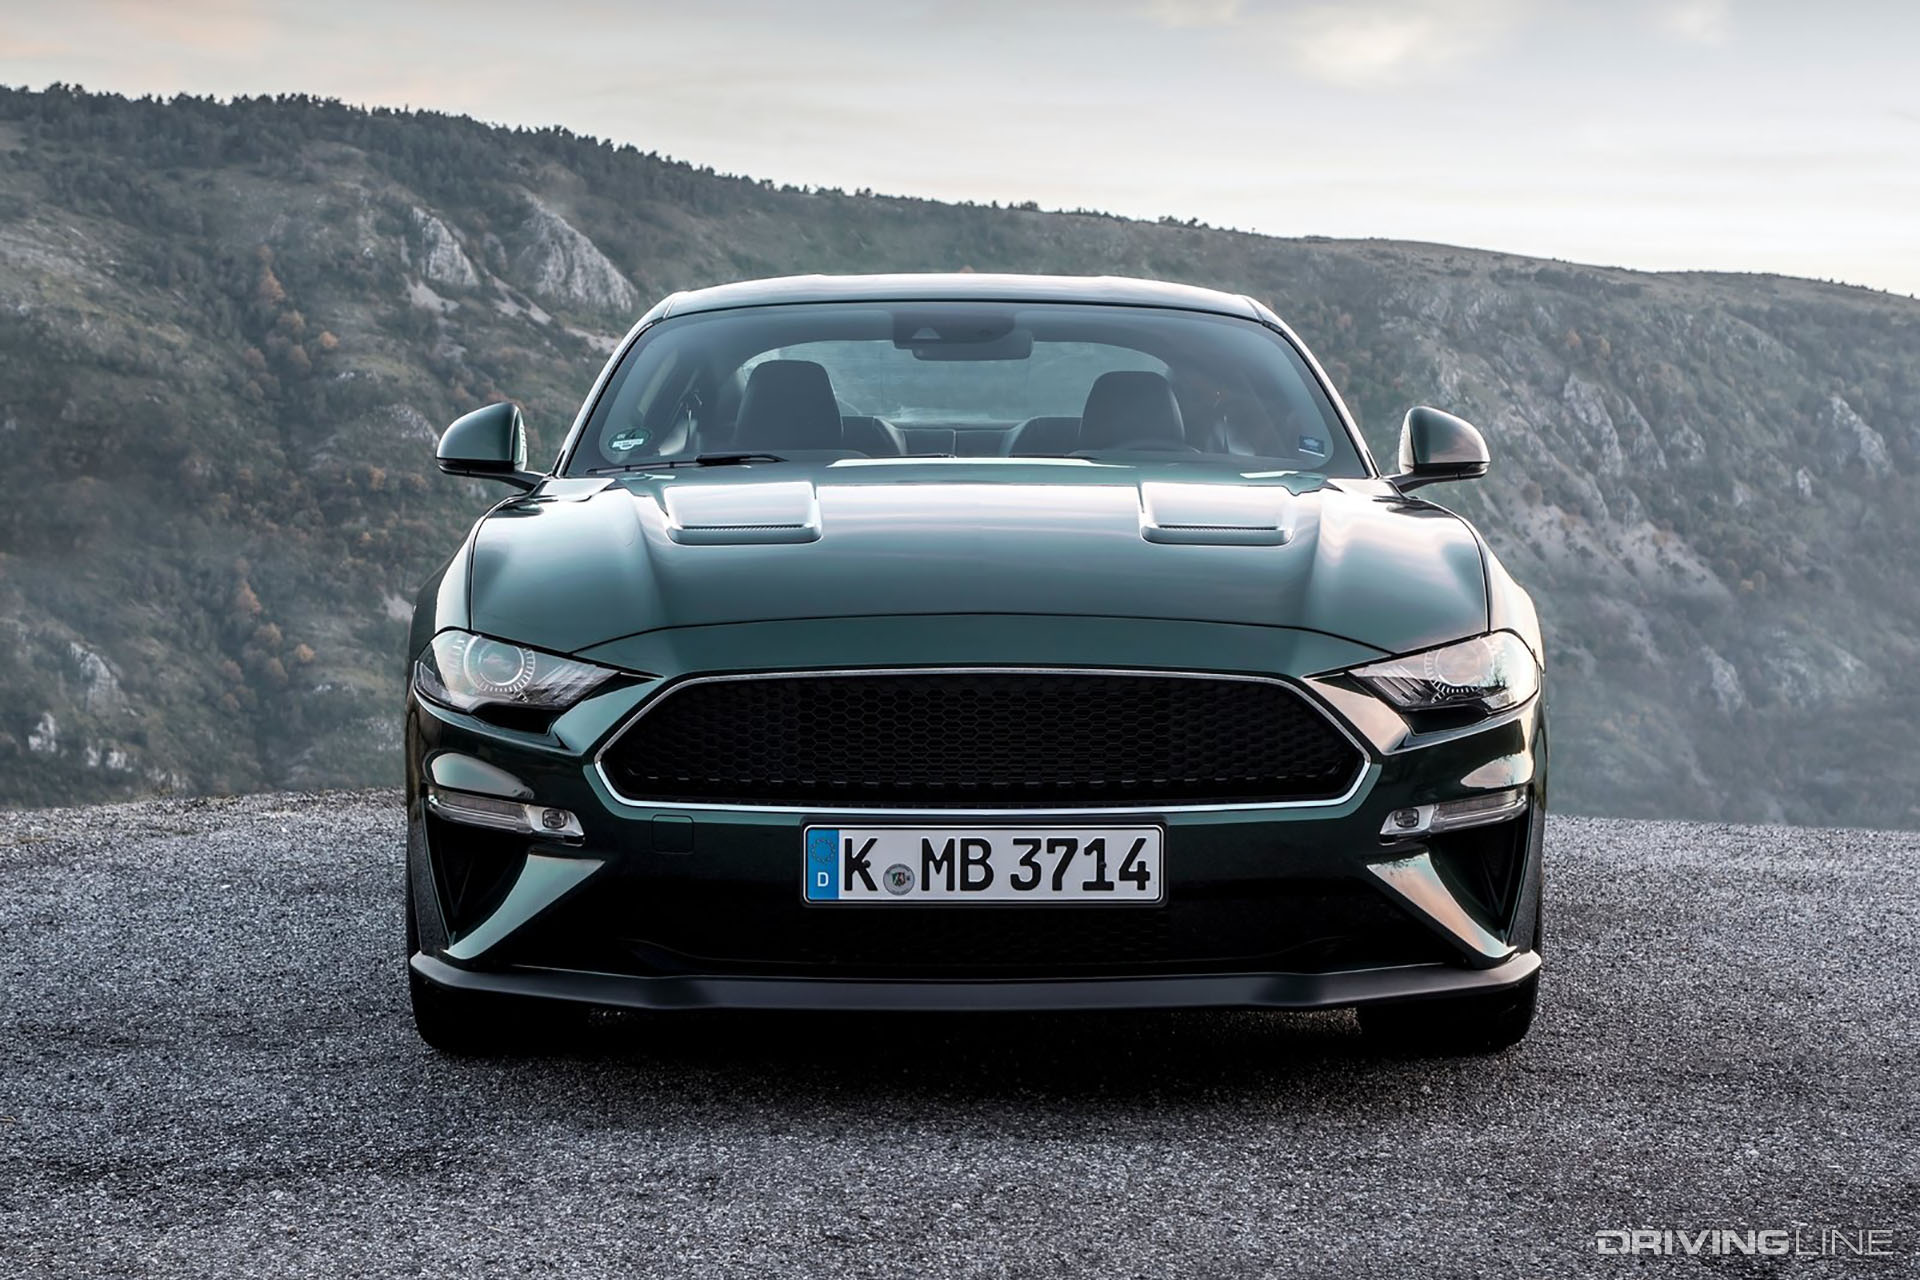 Family Pony: The Four-Door Mustang May Be Coming | DrivingLine